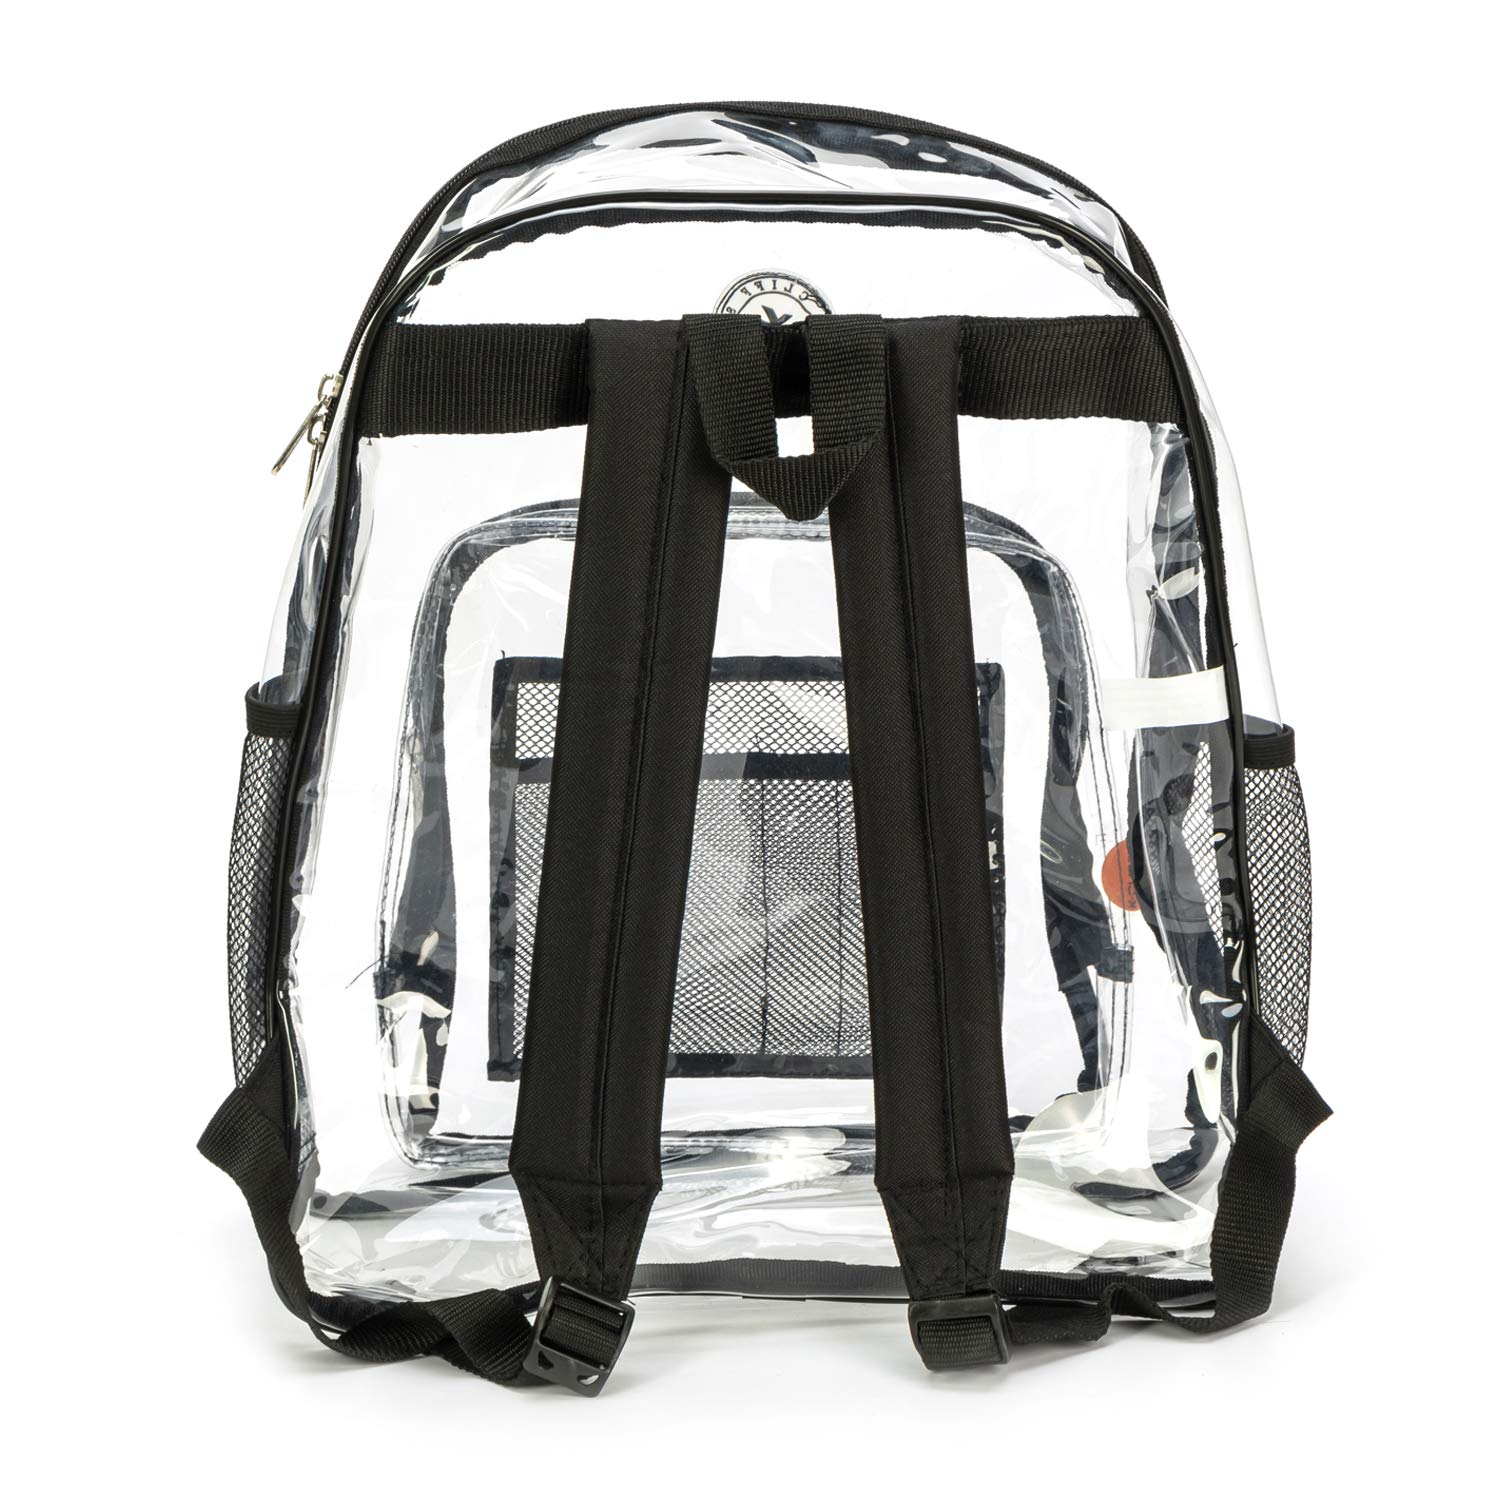 Heavy Duty Clear Backpack Durable See Through Student School Bookbag Quality Transparent Workbag Easy Stadium Security Check Bag Daypack Black by K-Cliffs (Image #8)